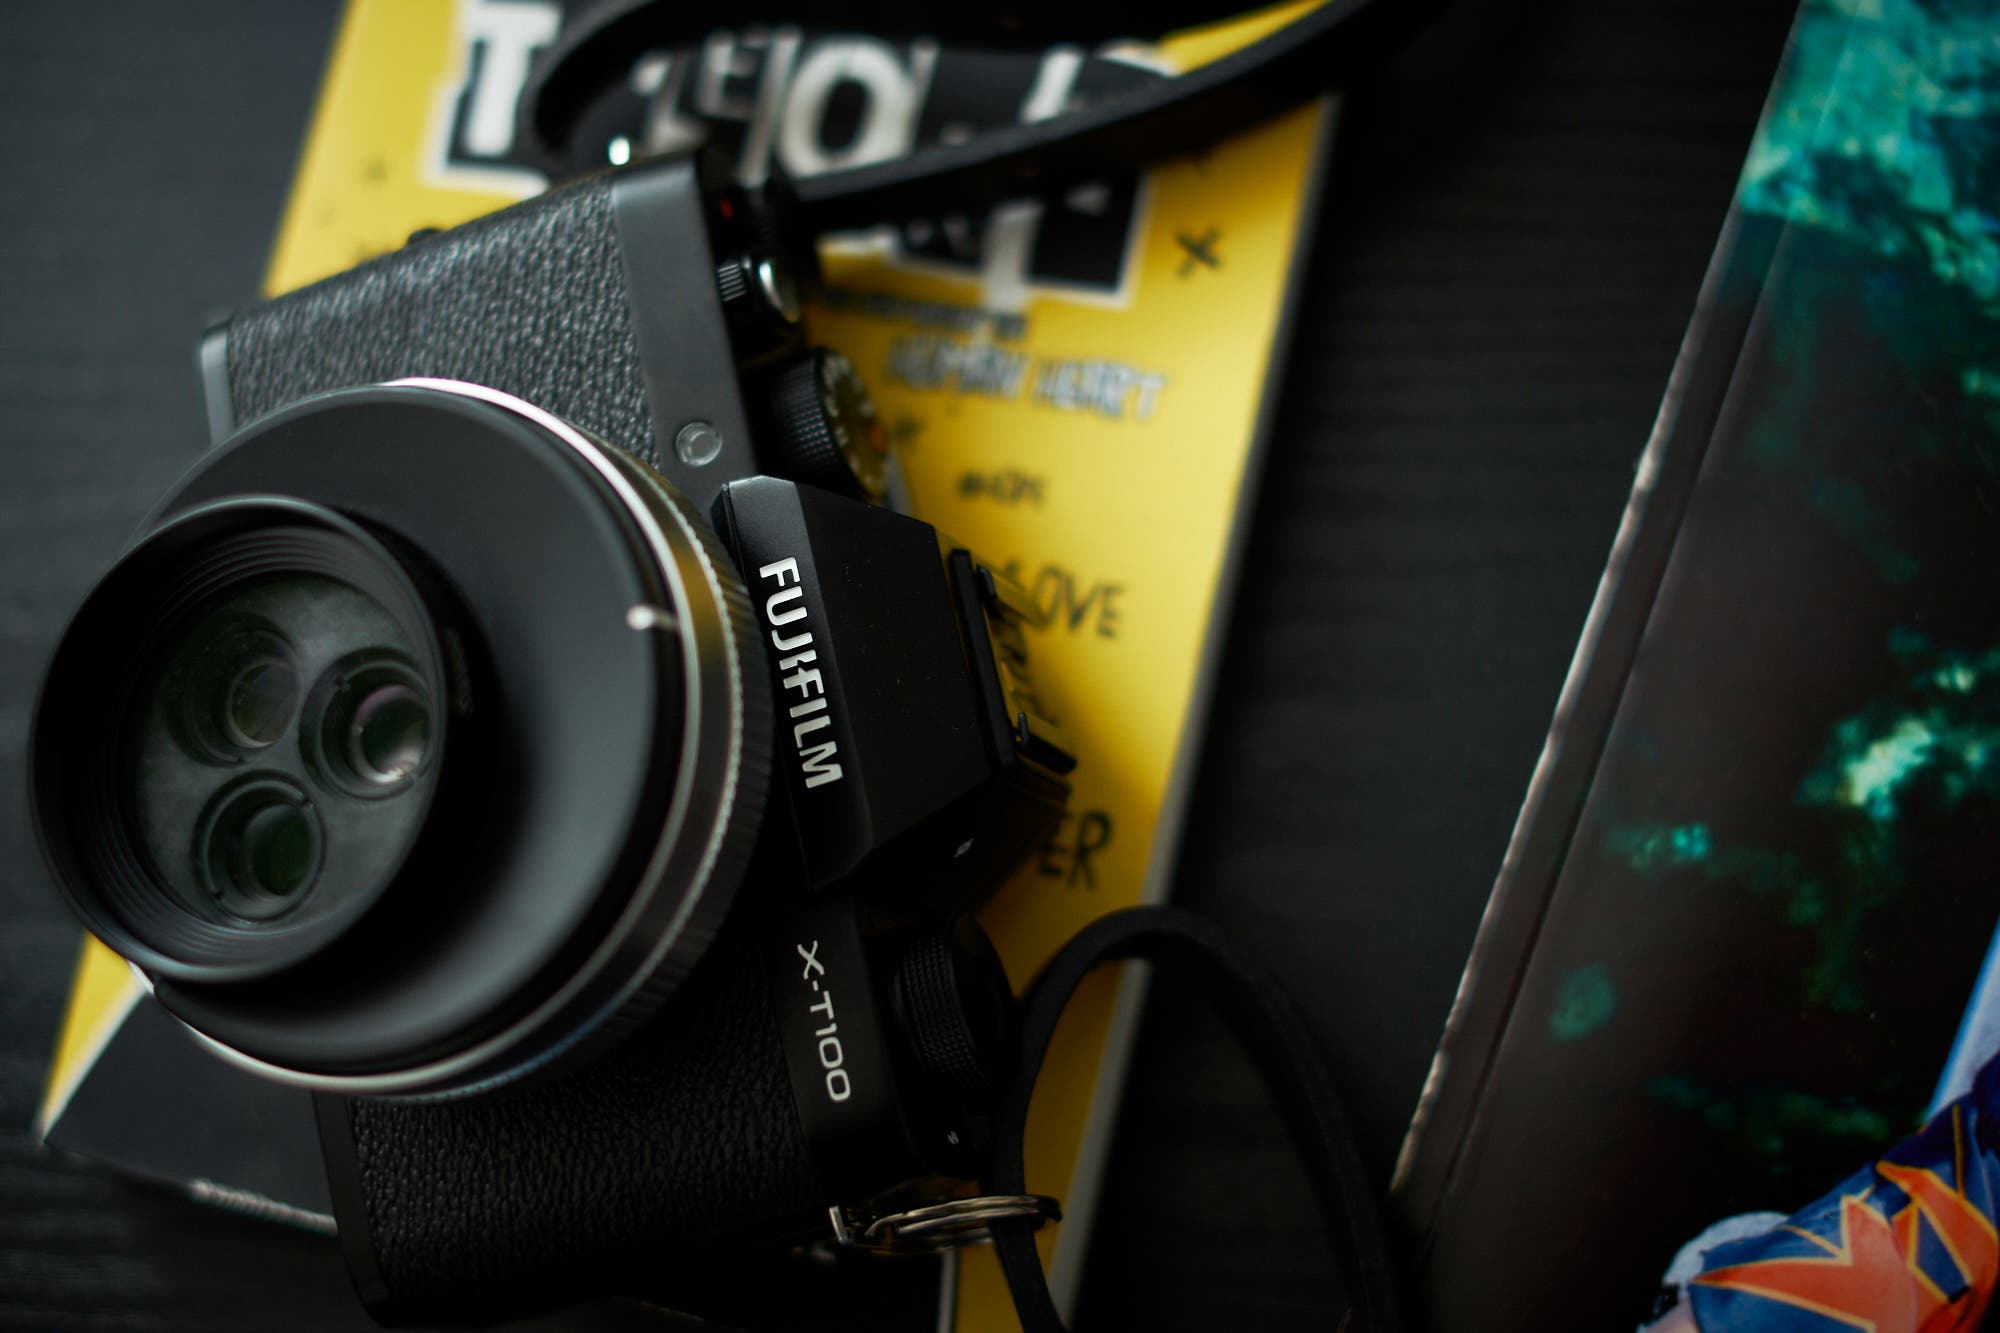 Review: Fujifilm XT100 (Their Most Entry Level Camera Yet)